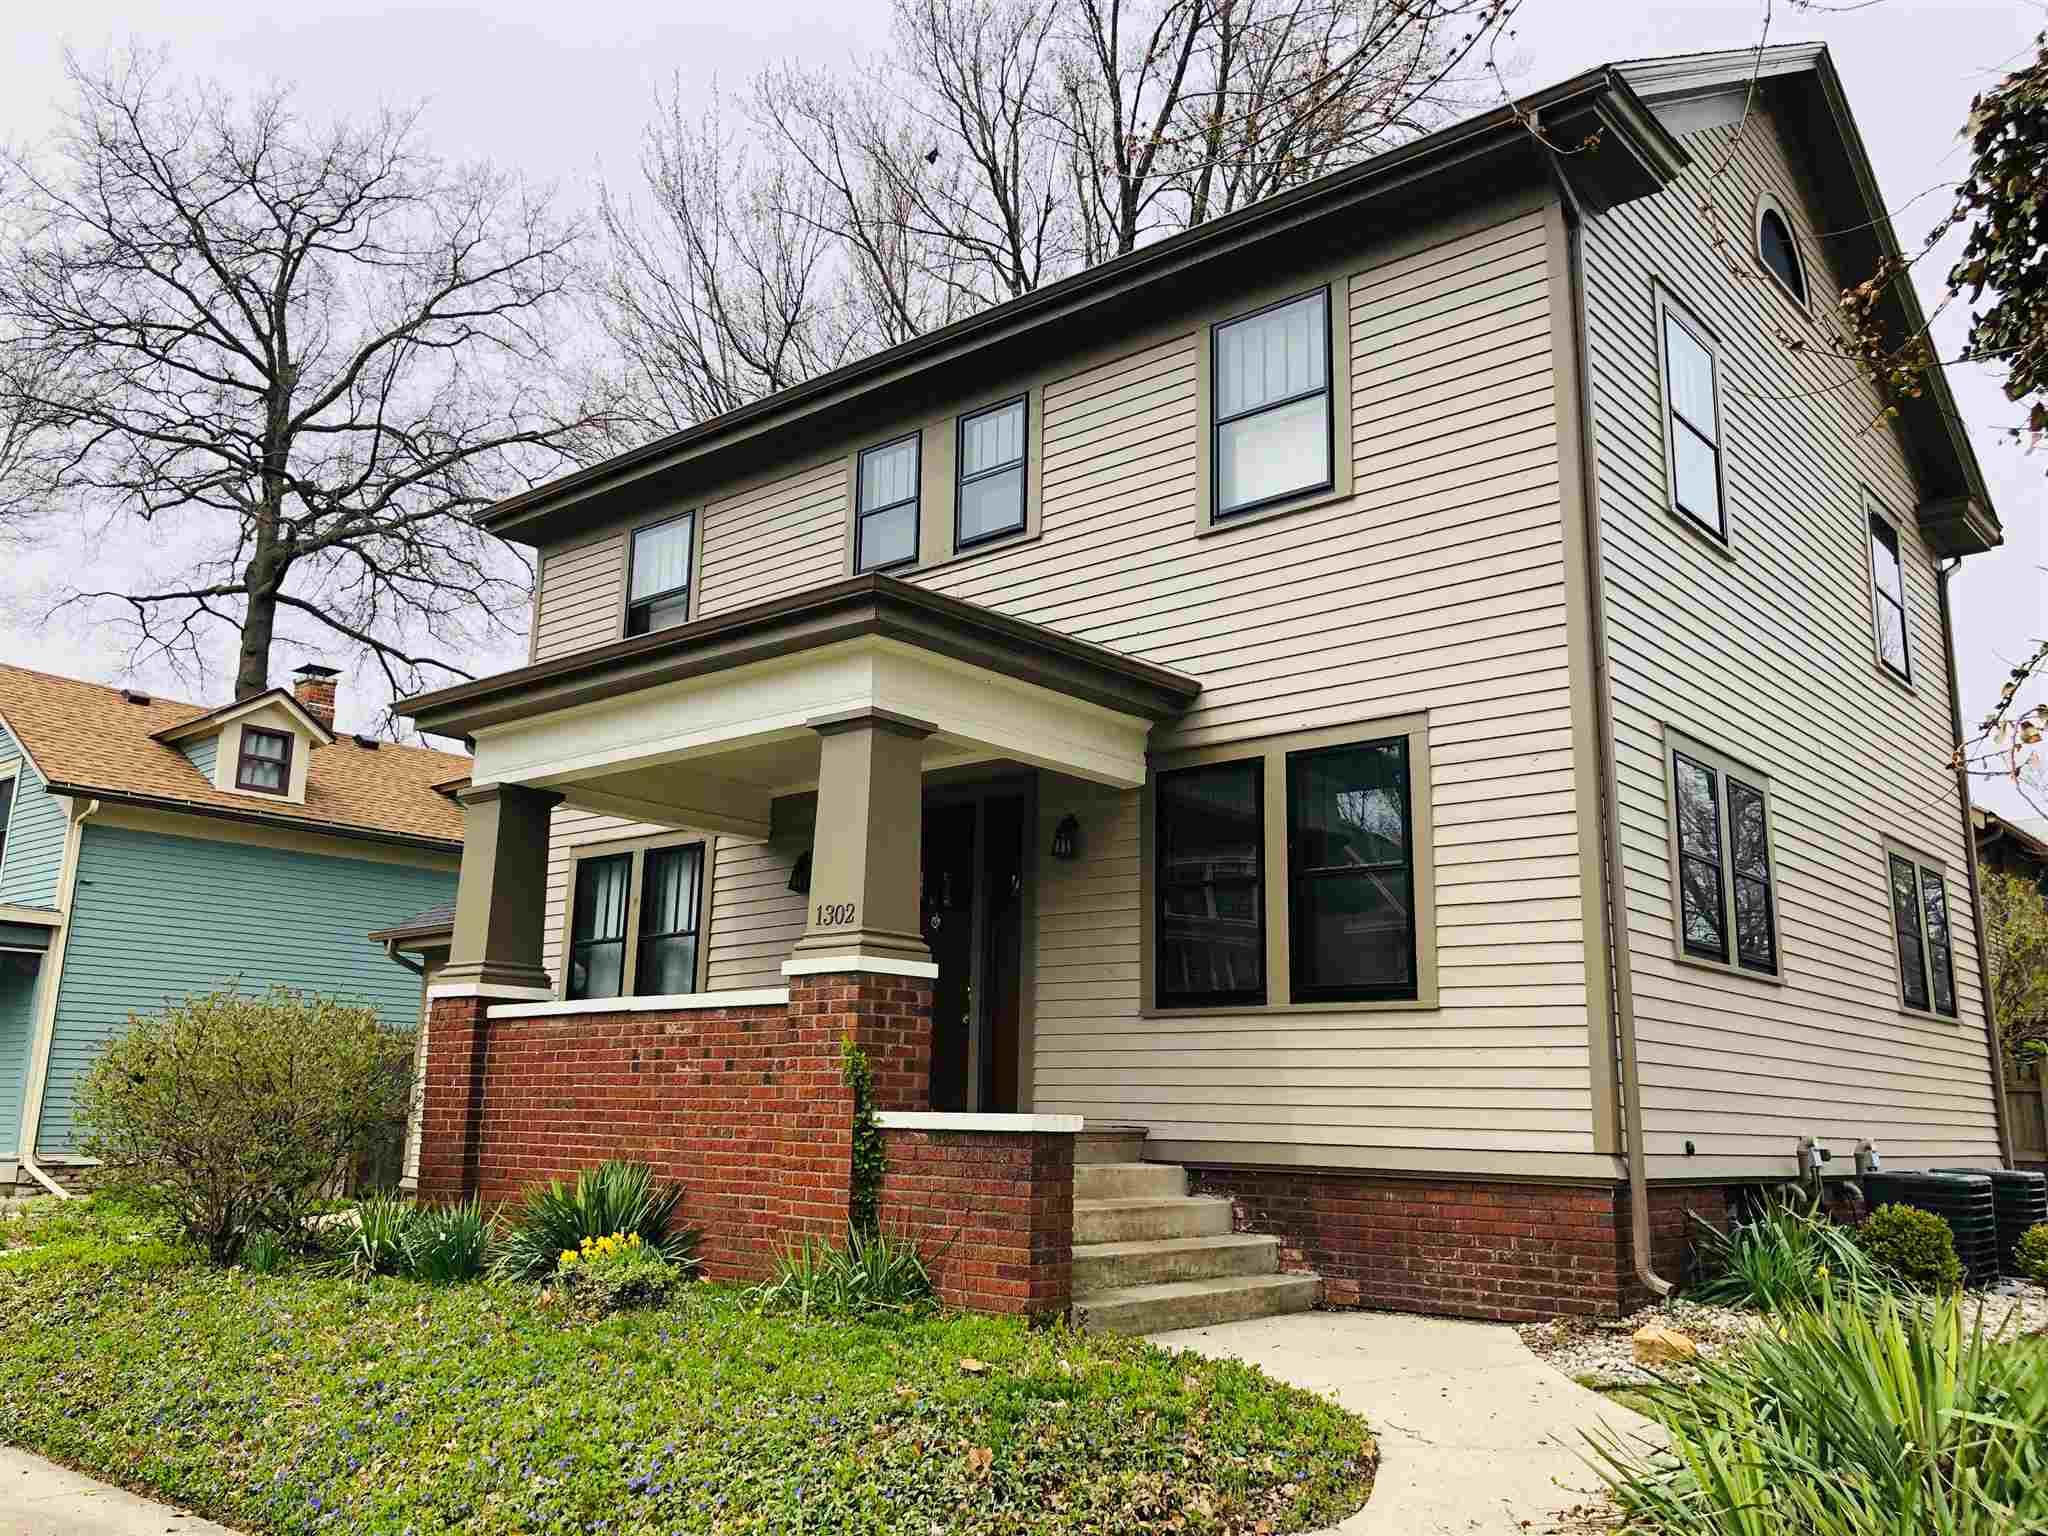 1302 W Jefferson, Fort Wayne, IN 46802